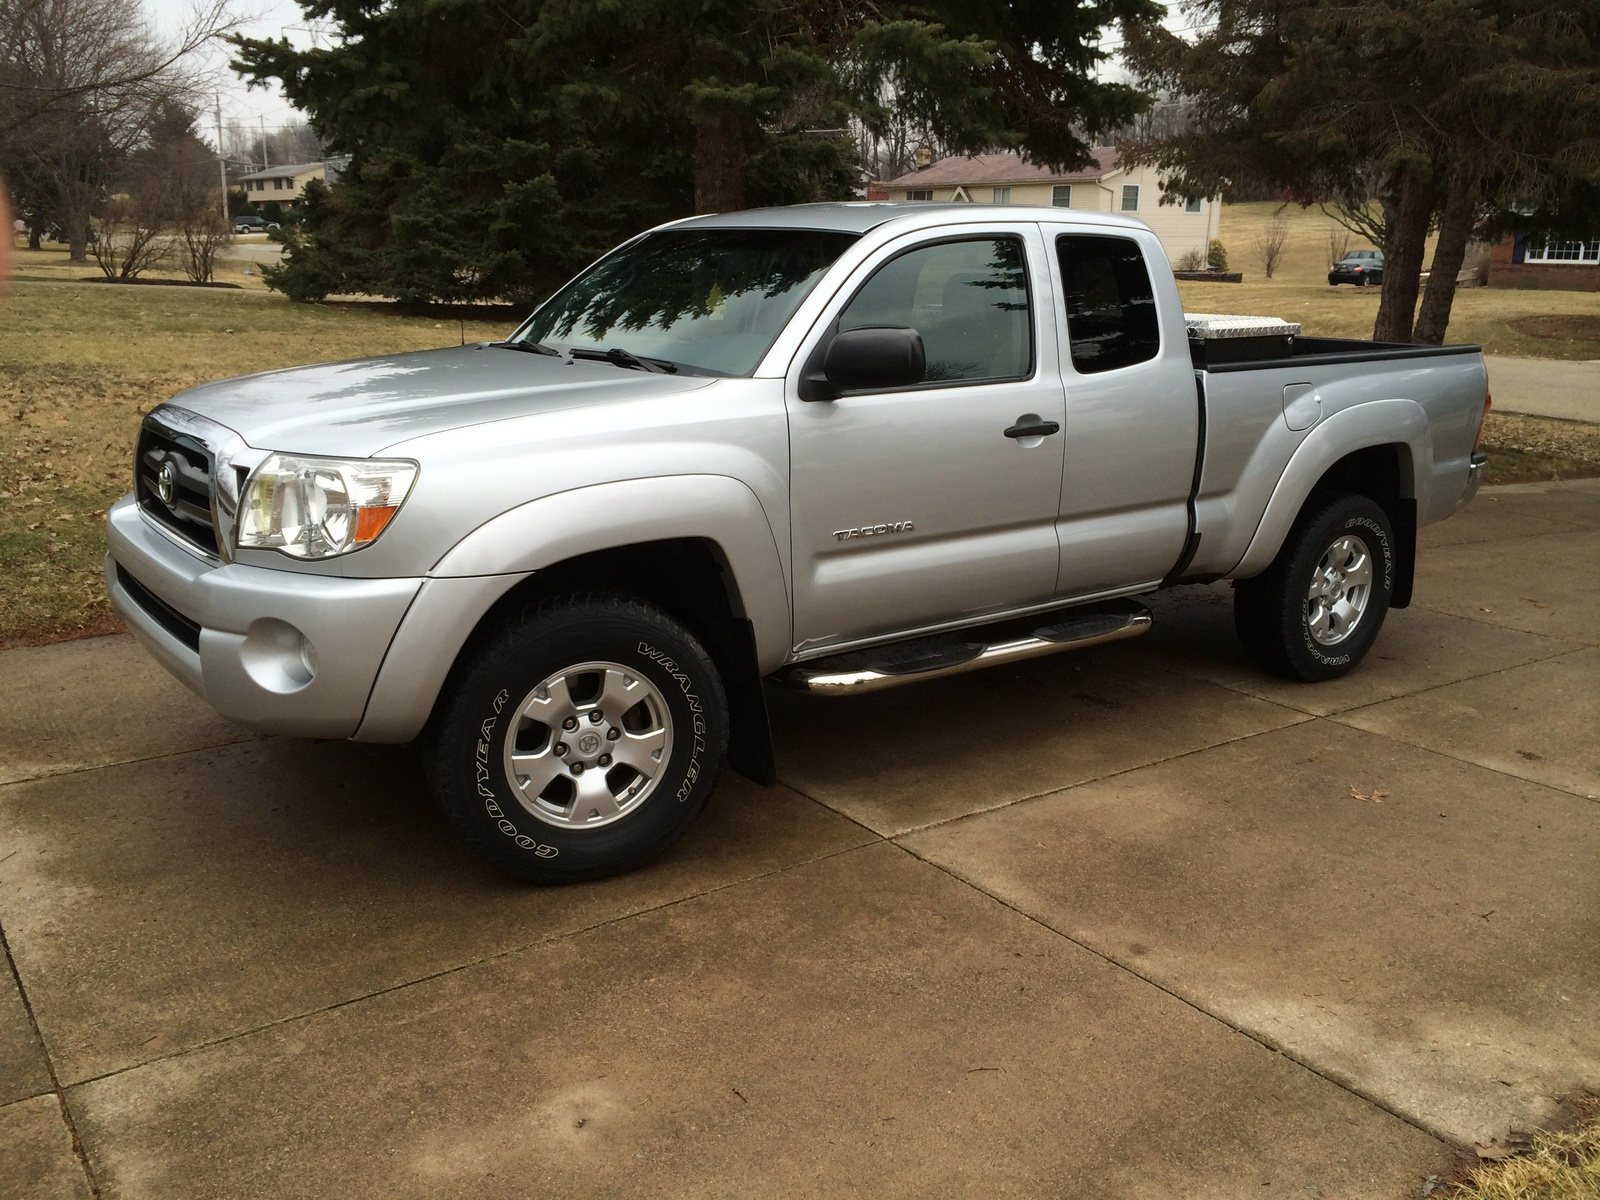 2005 Toyota Tacoma X Runner Access Cab Reviews >> 2008 Toyota Tacoma - Pictures - CarGurus